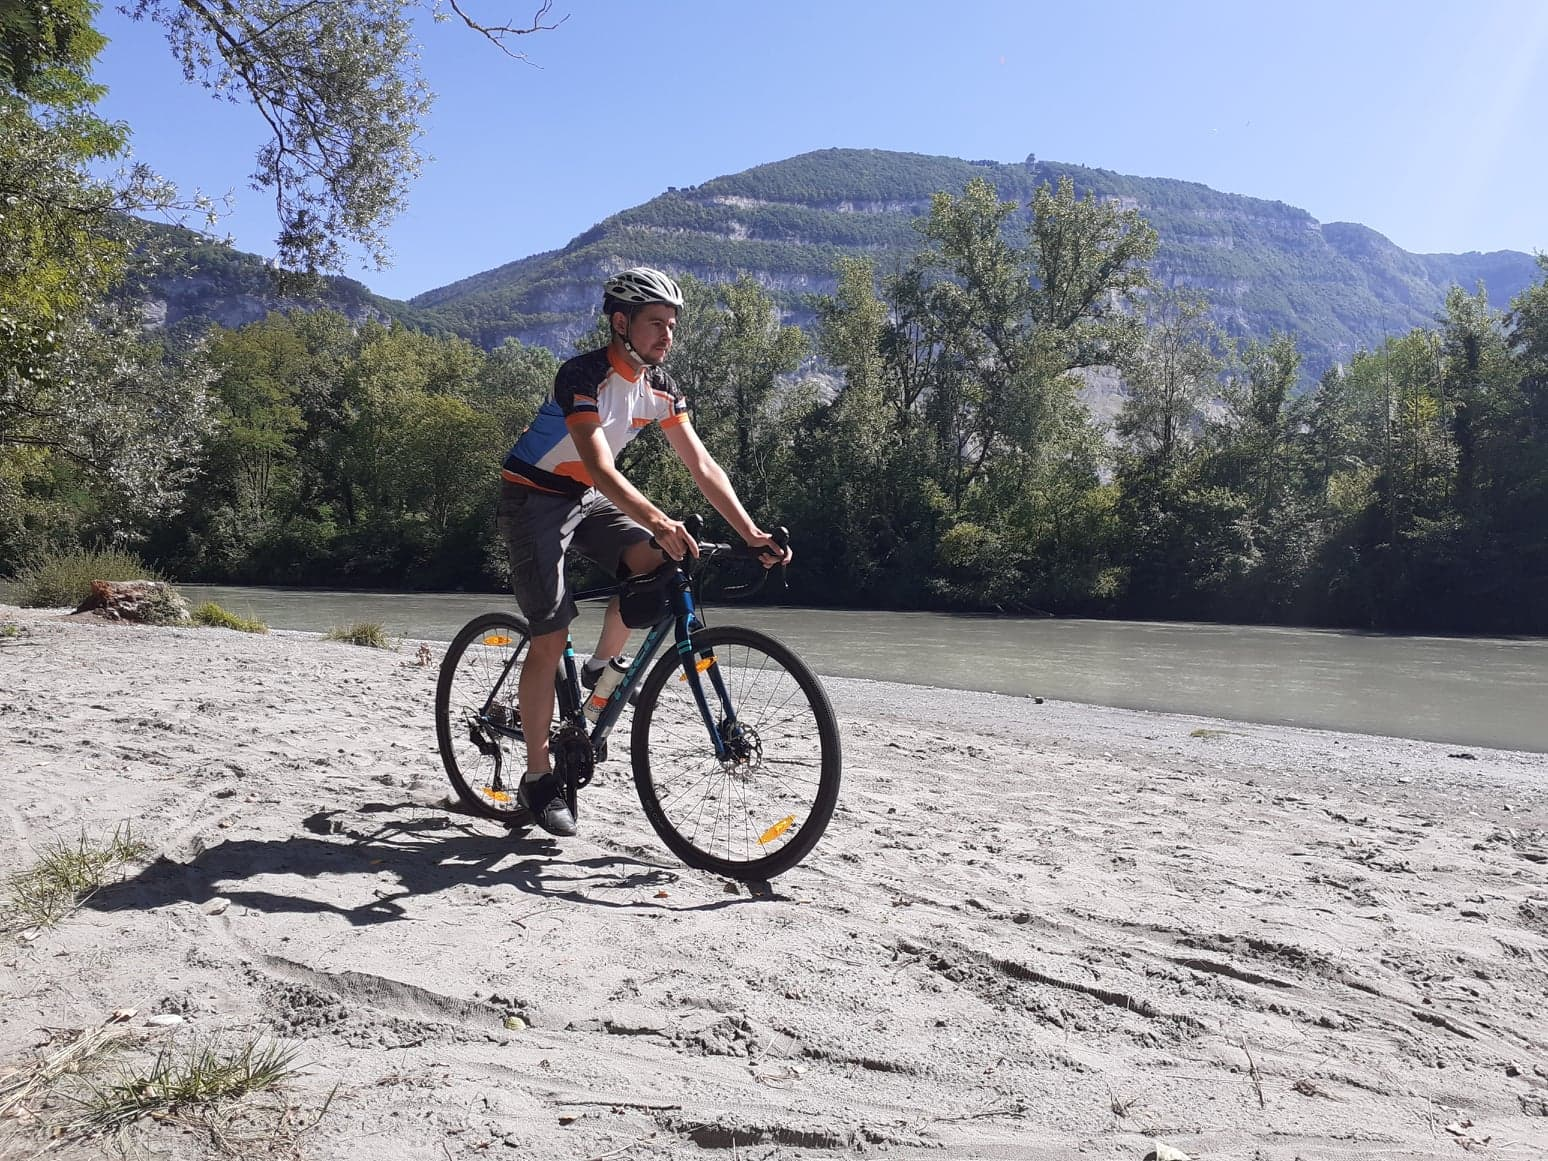 3 day gravel biking tour in France: Cycle Geneva to Aix-les-Bains